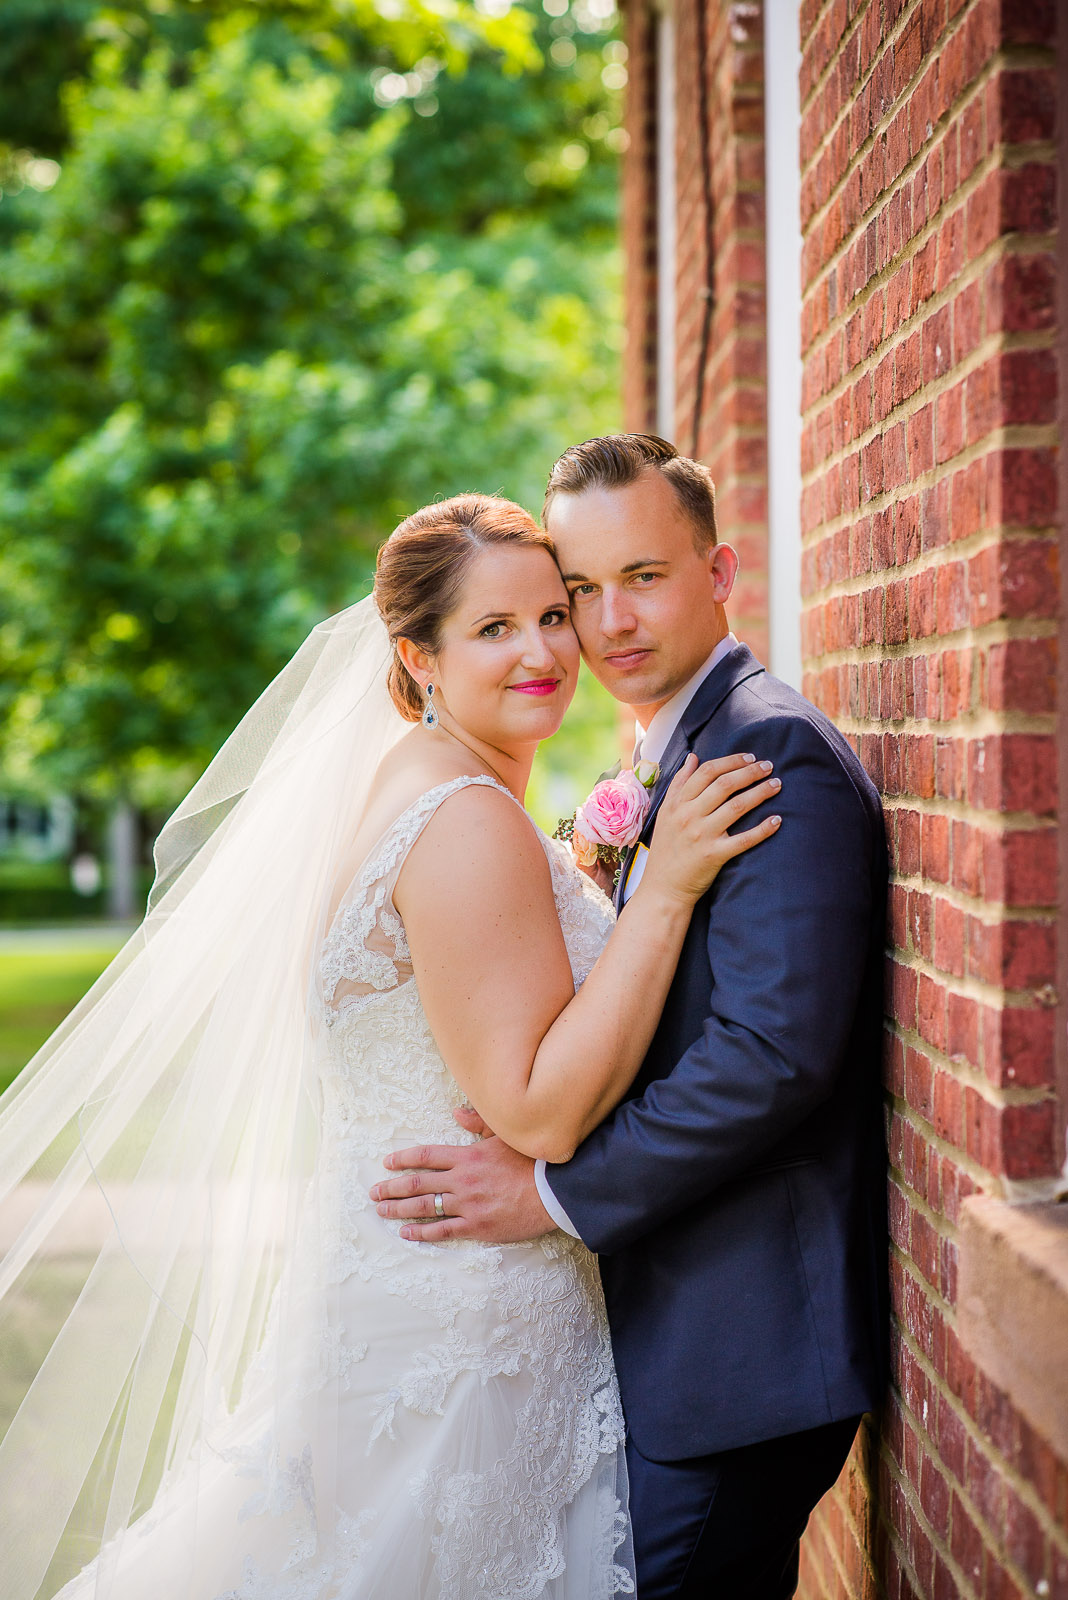 Eric_and_Christy_Photography_Blog_Wedding_Paige_Eric-33